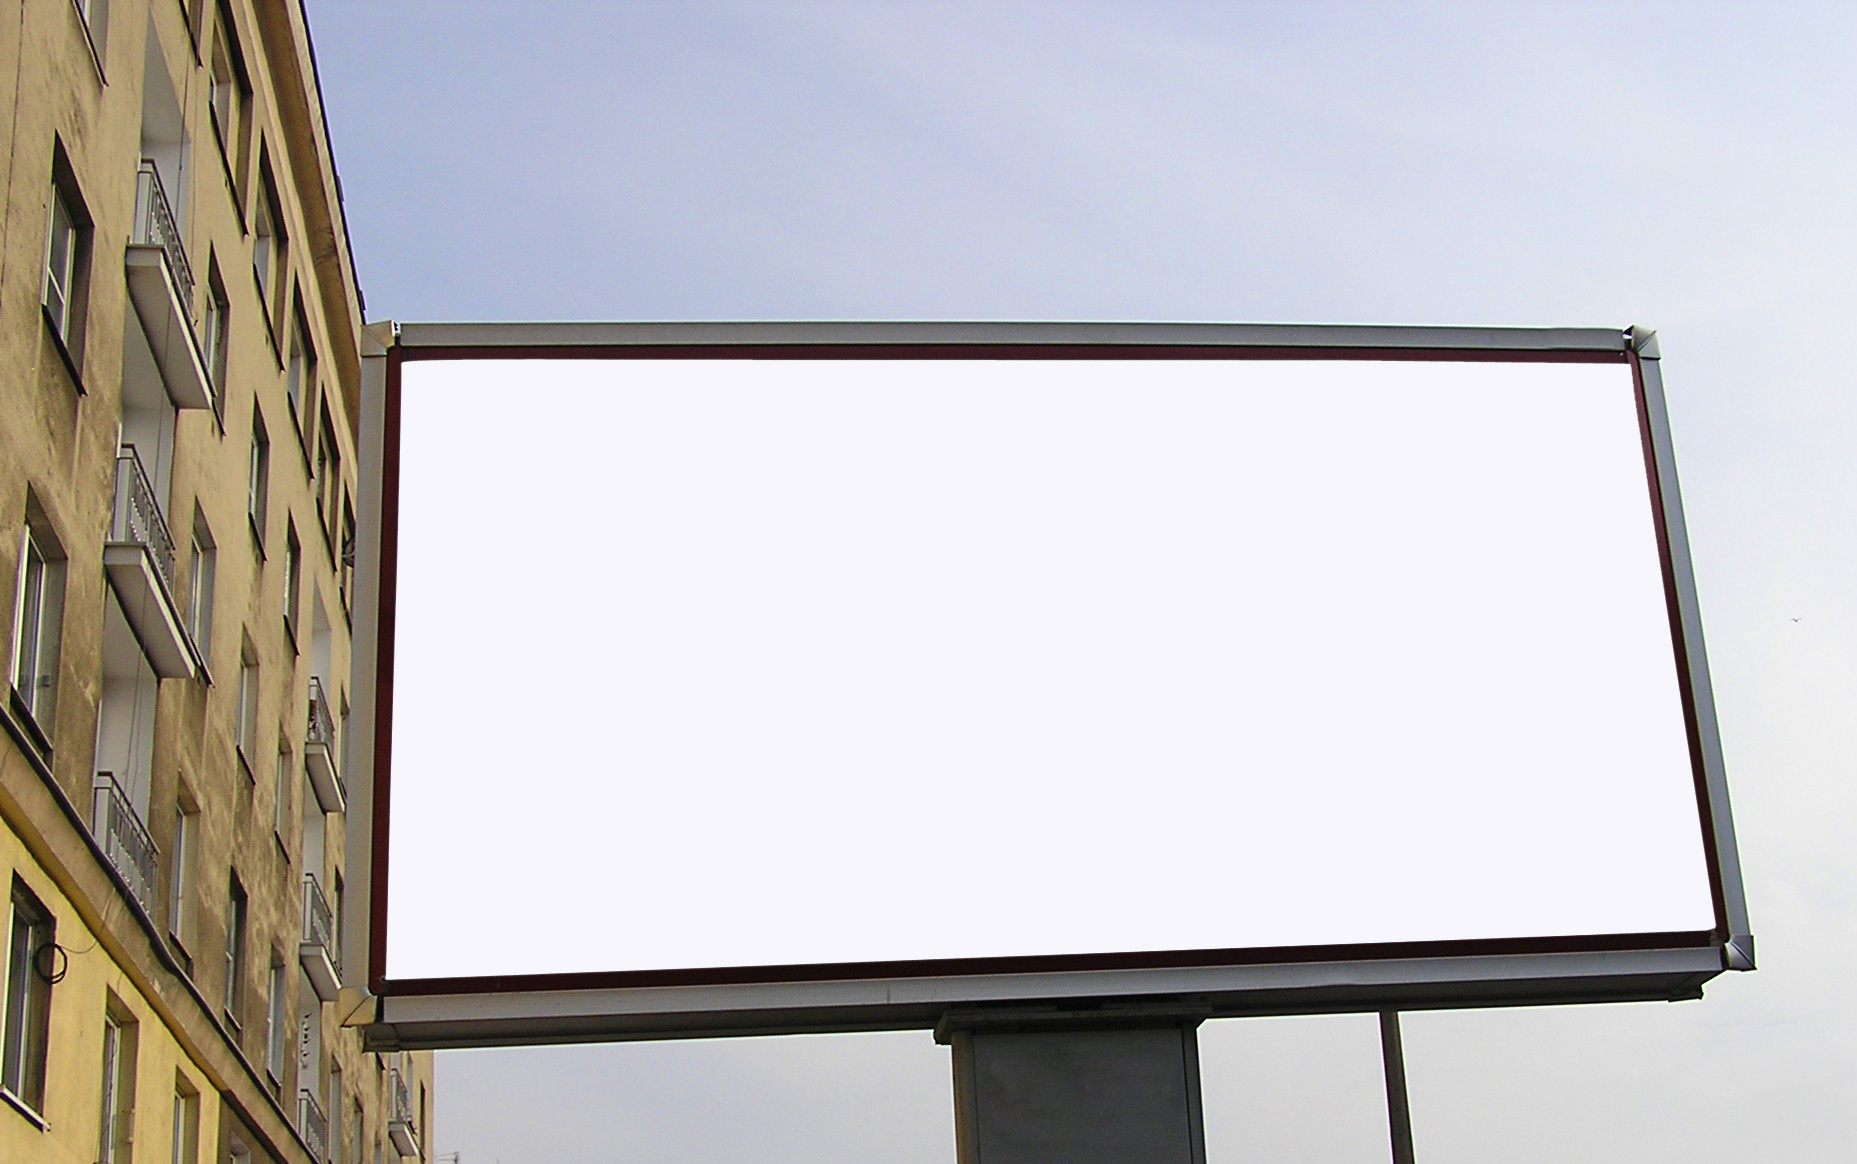 Refine Your Tone: Building a Better Advertising Copy